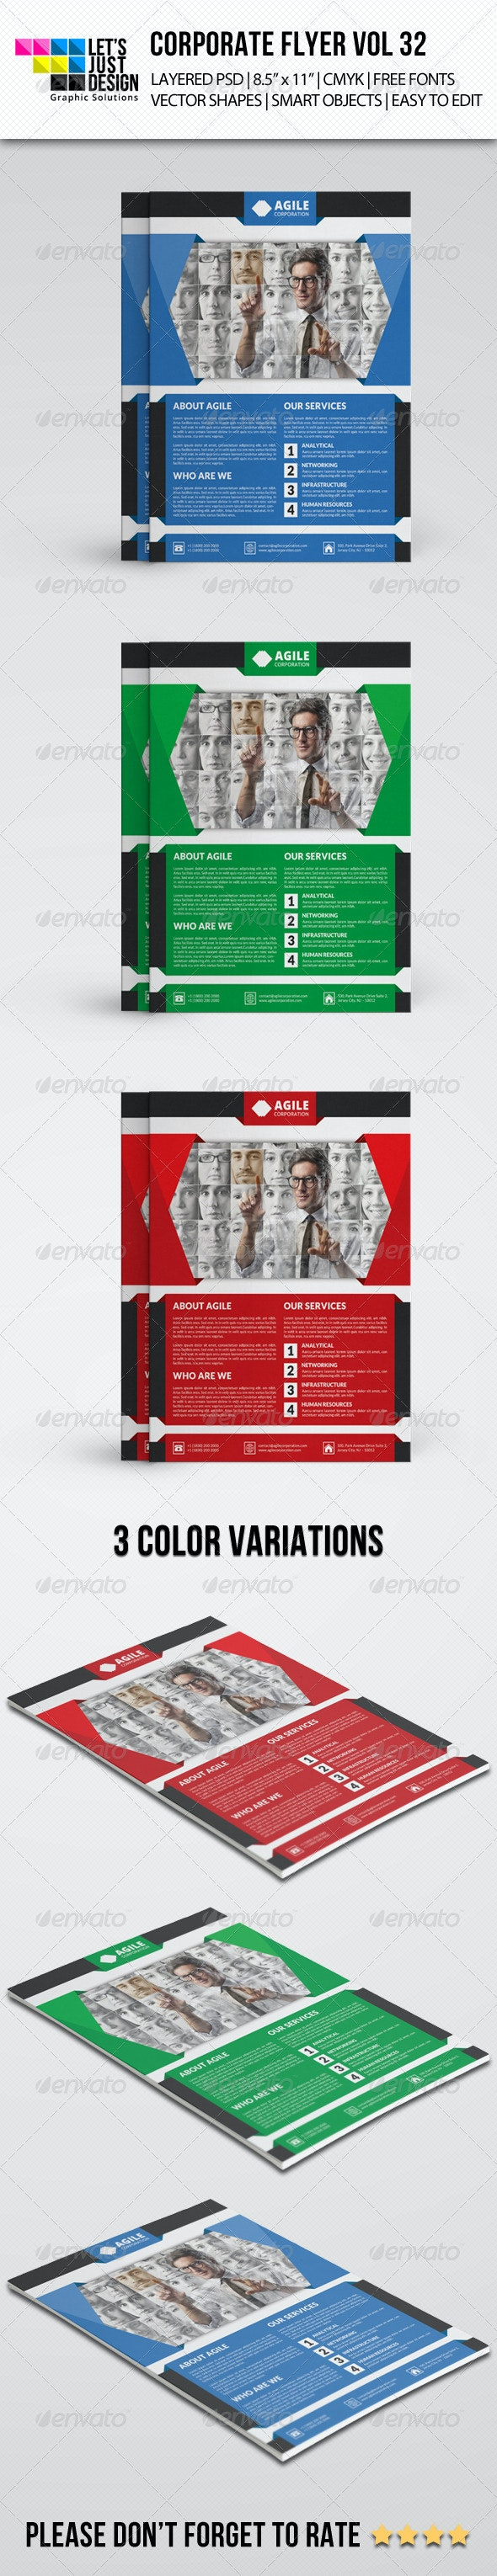 Corporate Flyer Template Vol 32 - Corporate Flyers